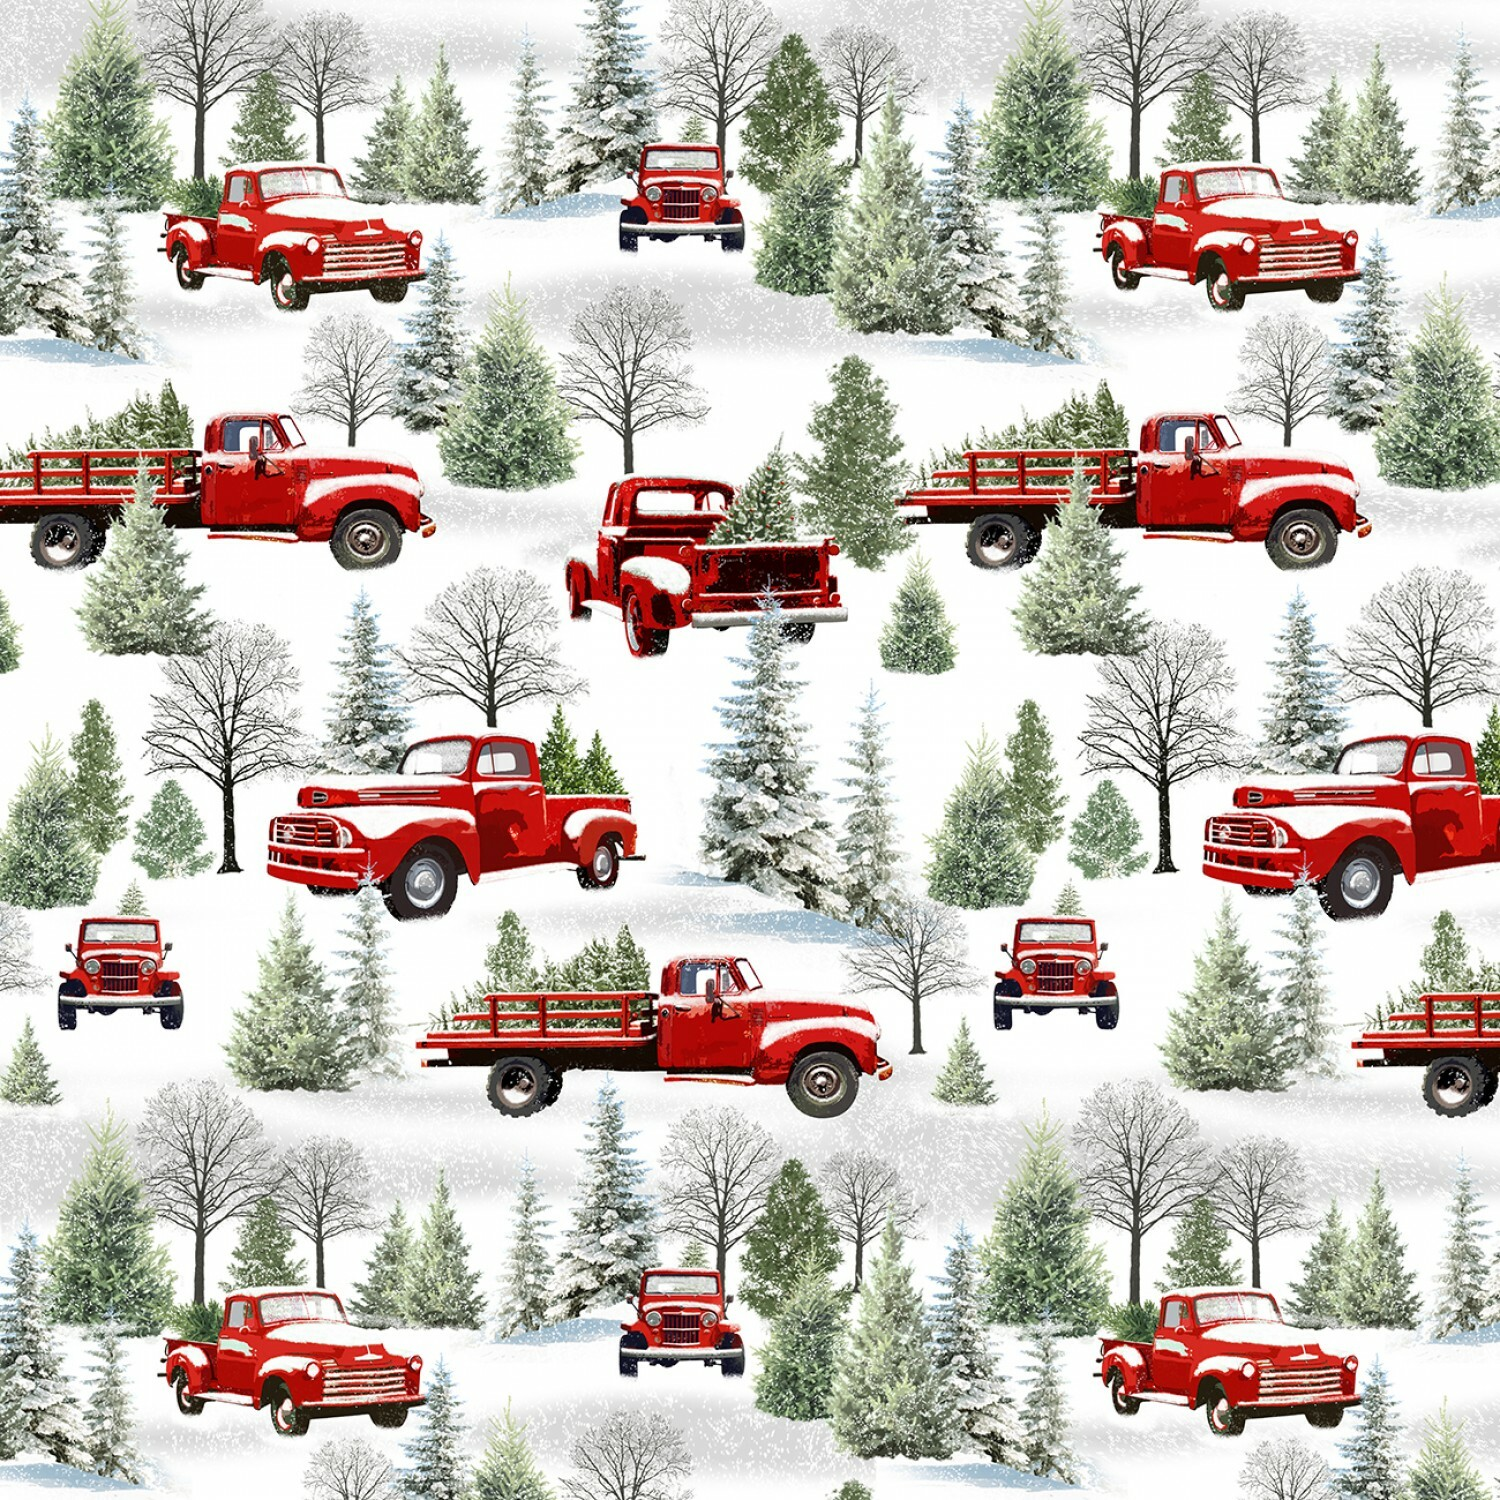 Grey/Red Scenic Trucks - The Tradition Continues - 1/2m Cut 55798